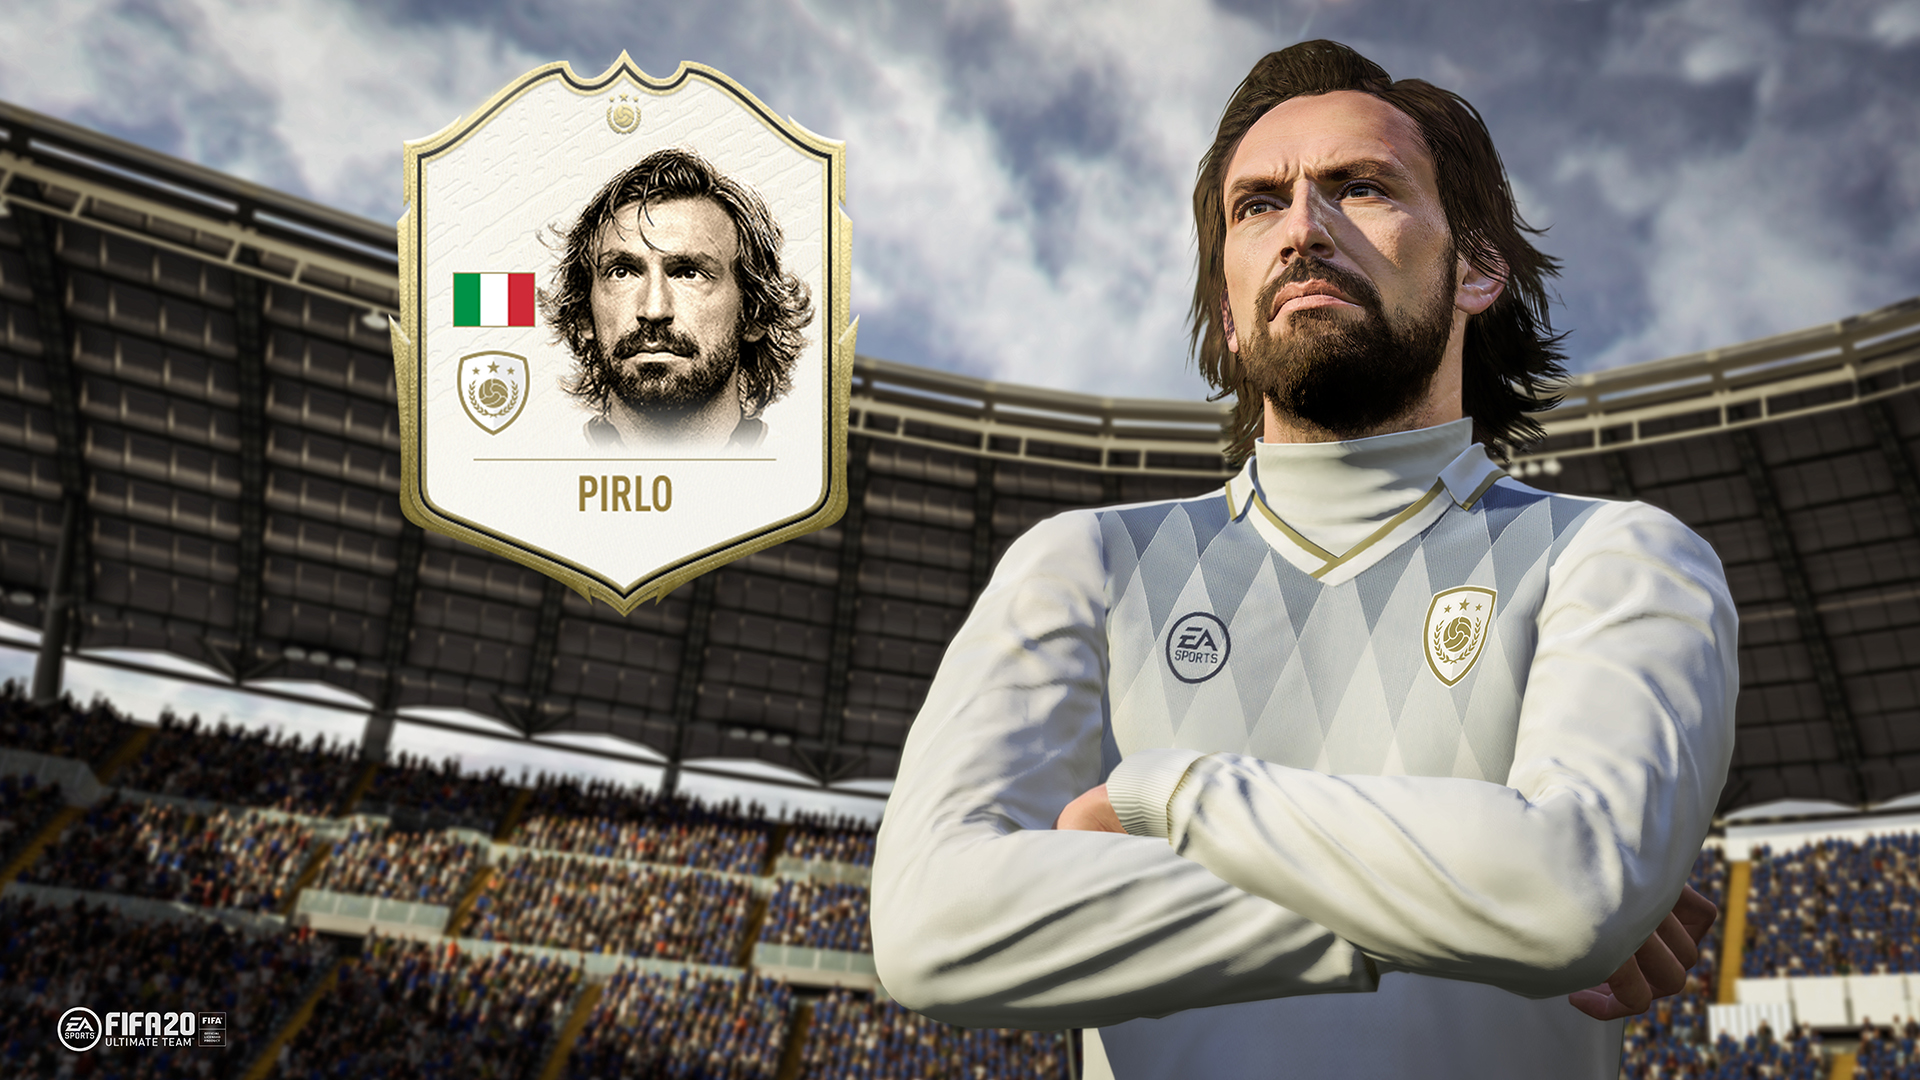 FIFA 20 icons: Every legend confirmed and the players we